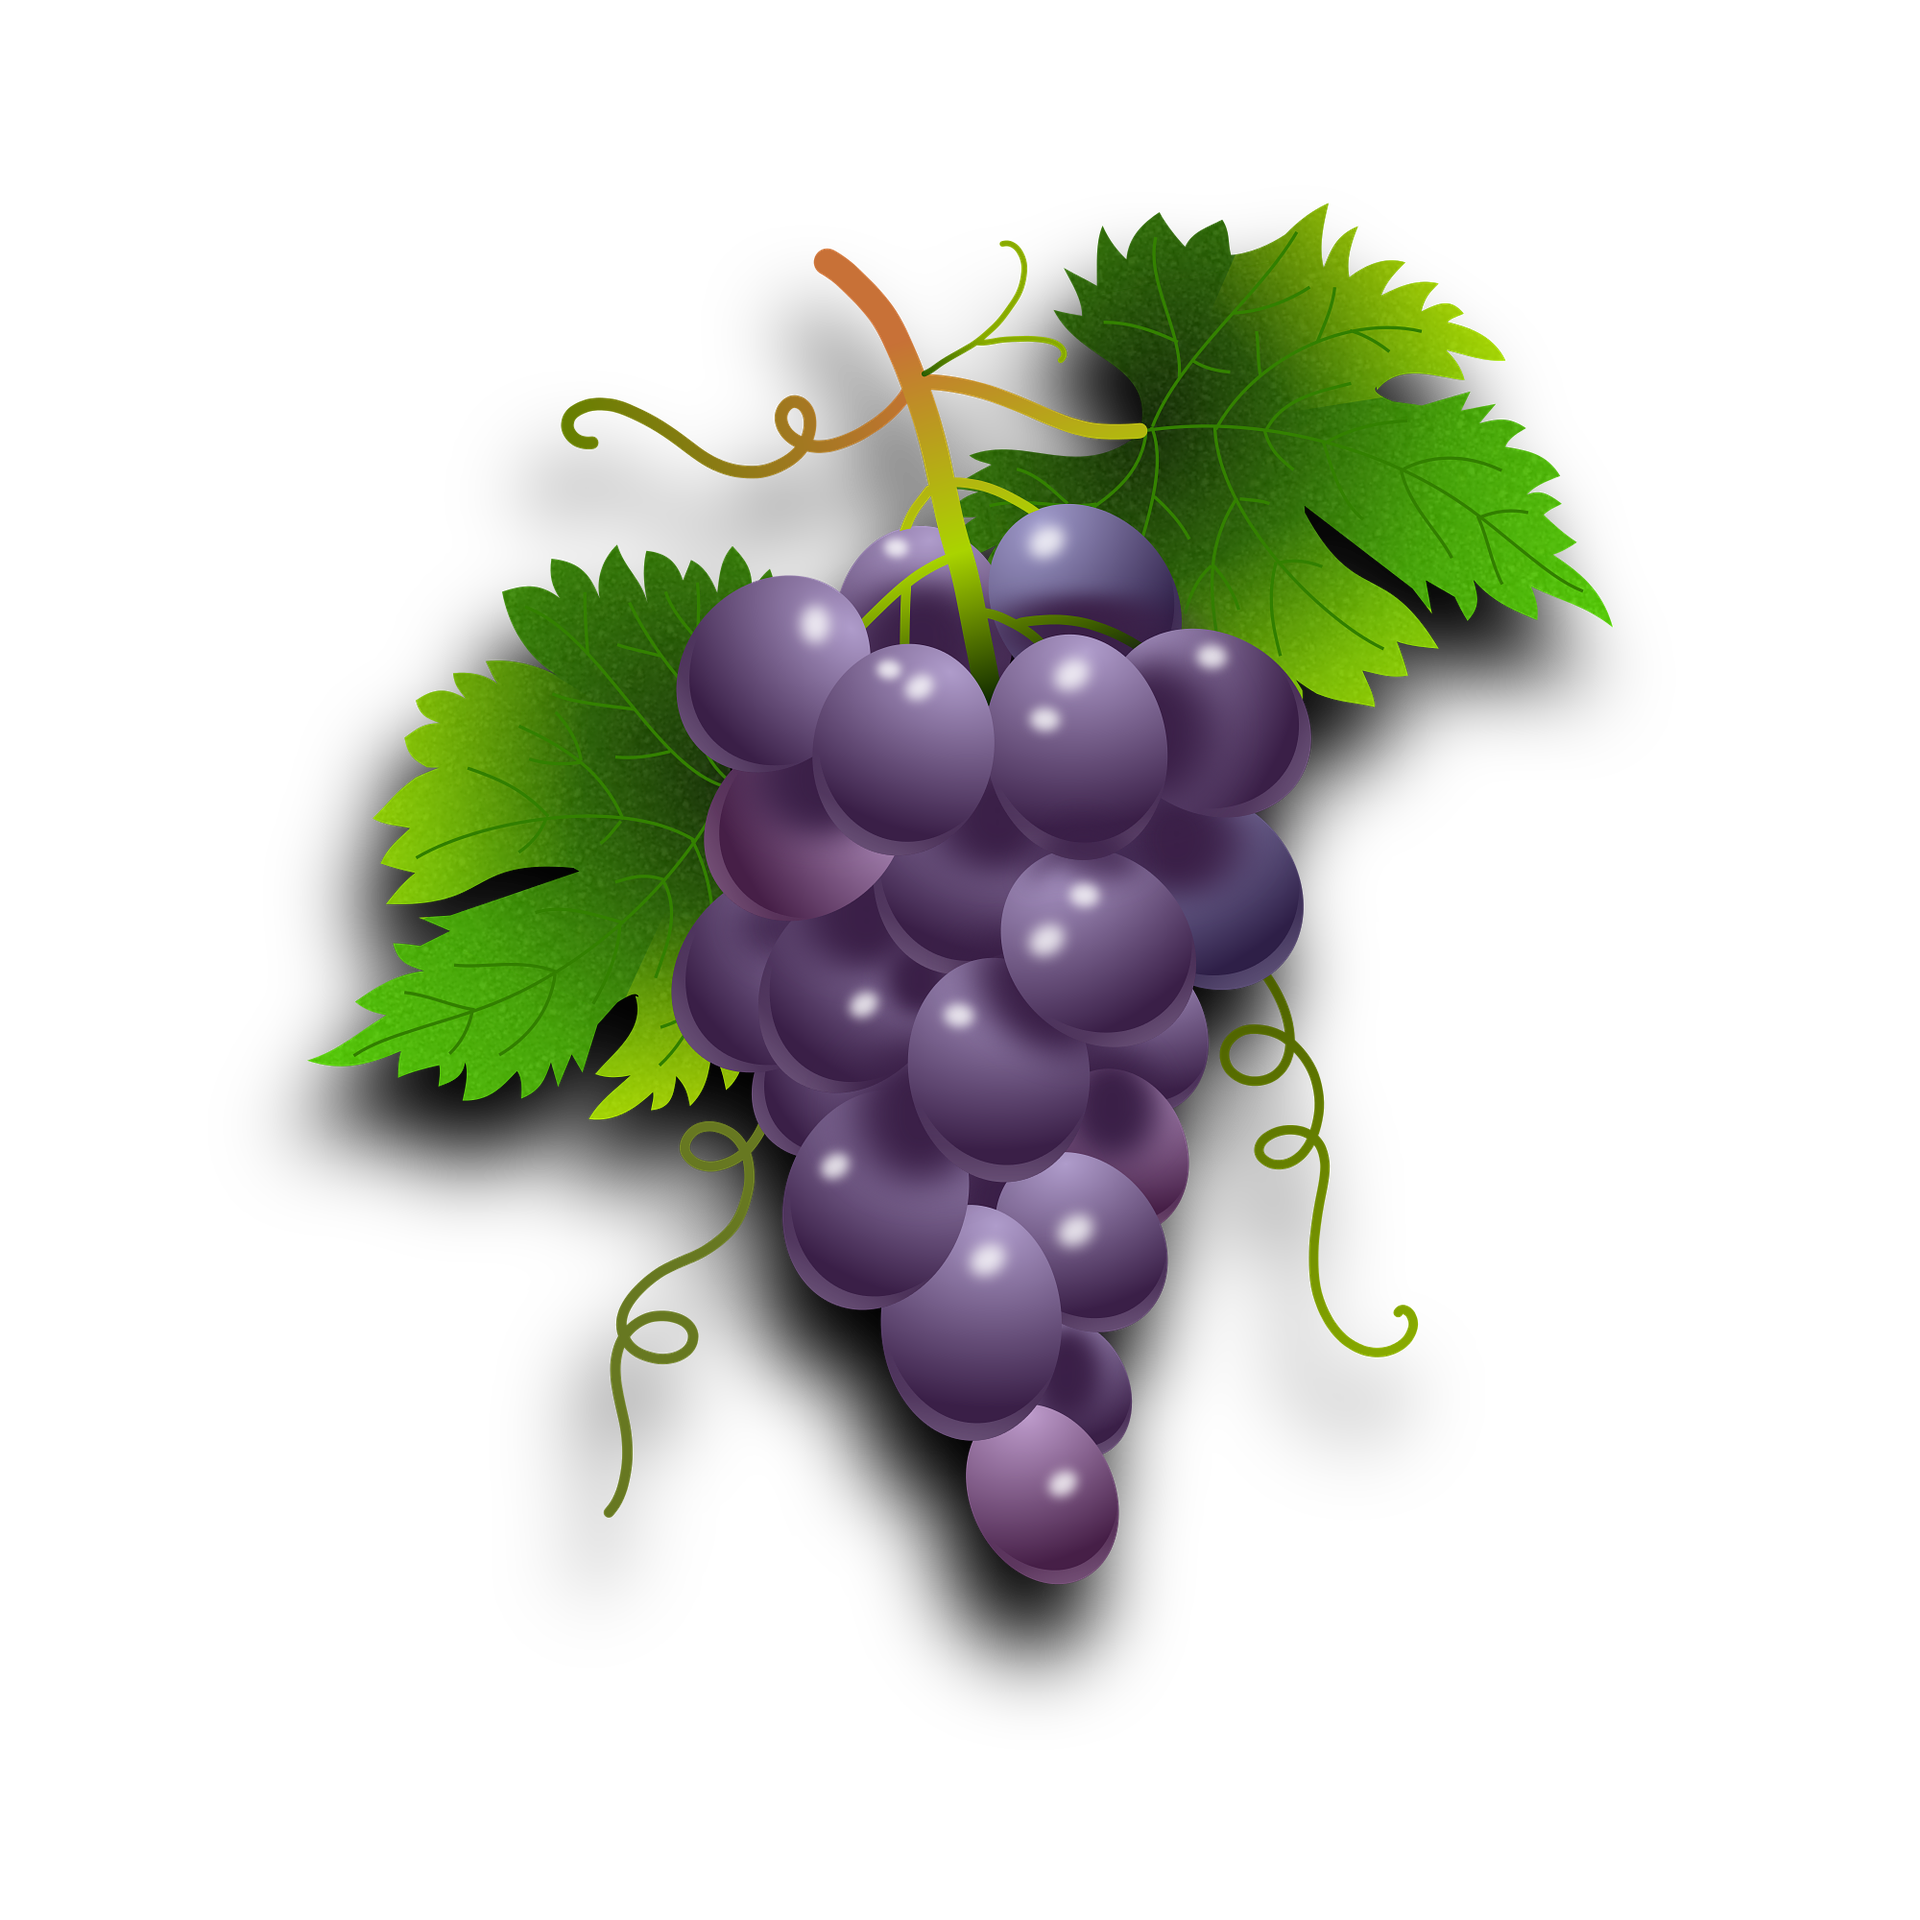 Grapes clipart grape soda. Purple x everyday foods